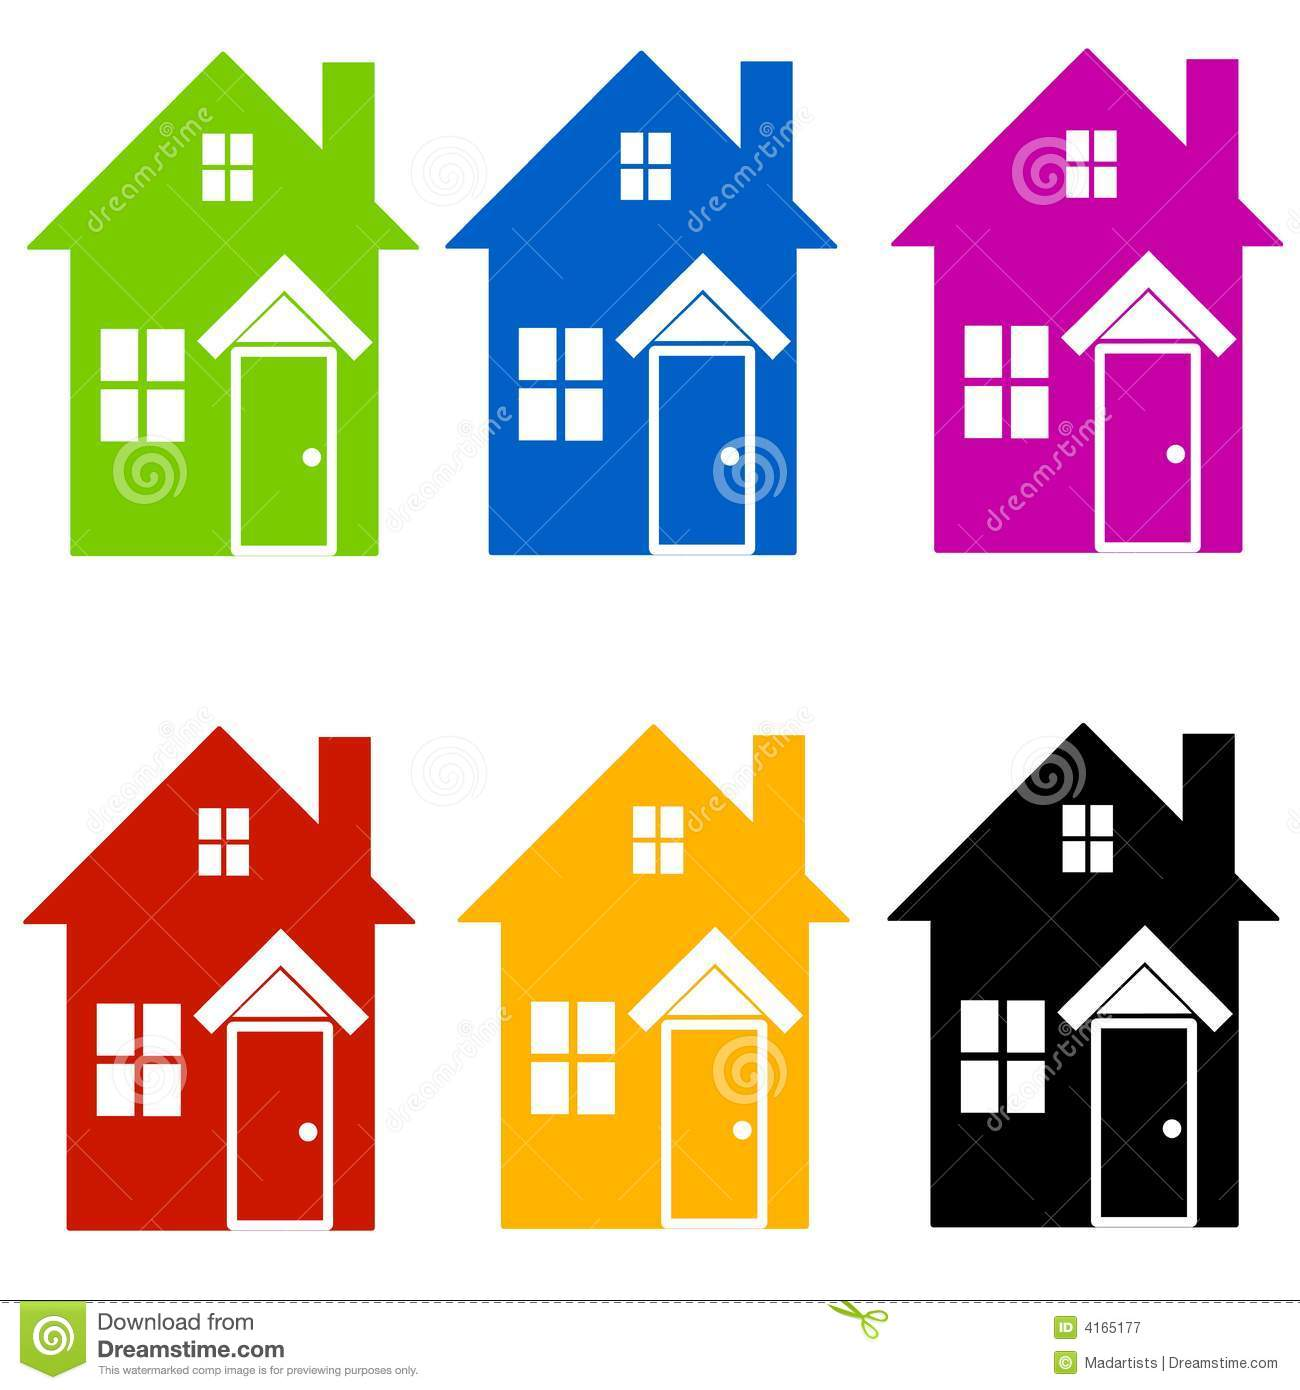 house clip art free cartoon clipart panda free clipart images rh clipartpanda com open house free clipart free clipart images of houses